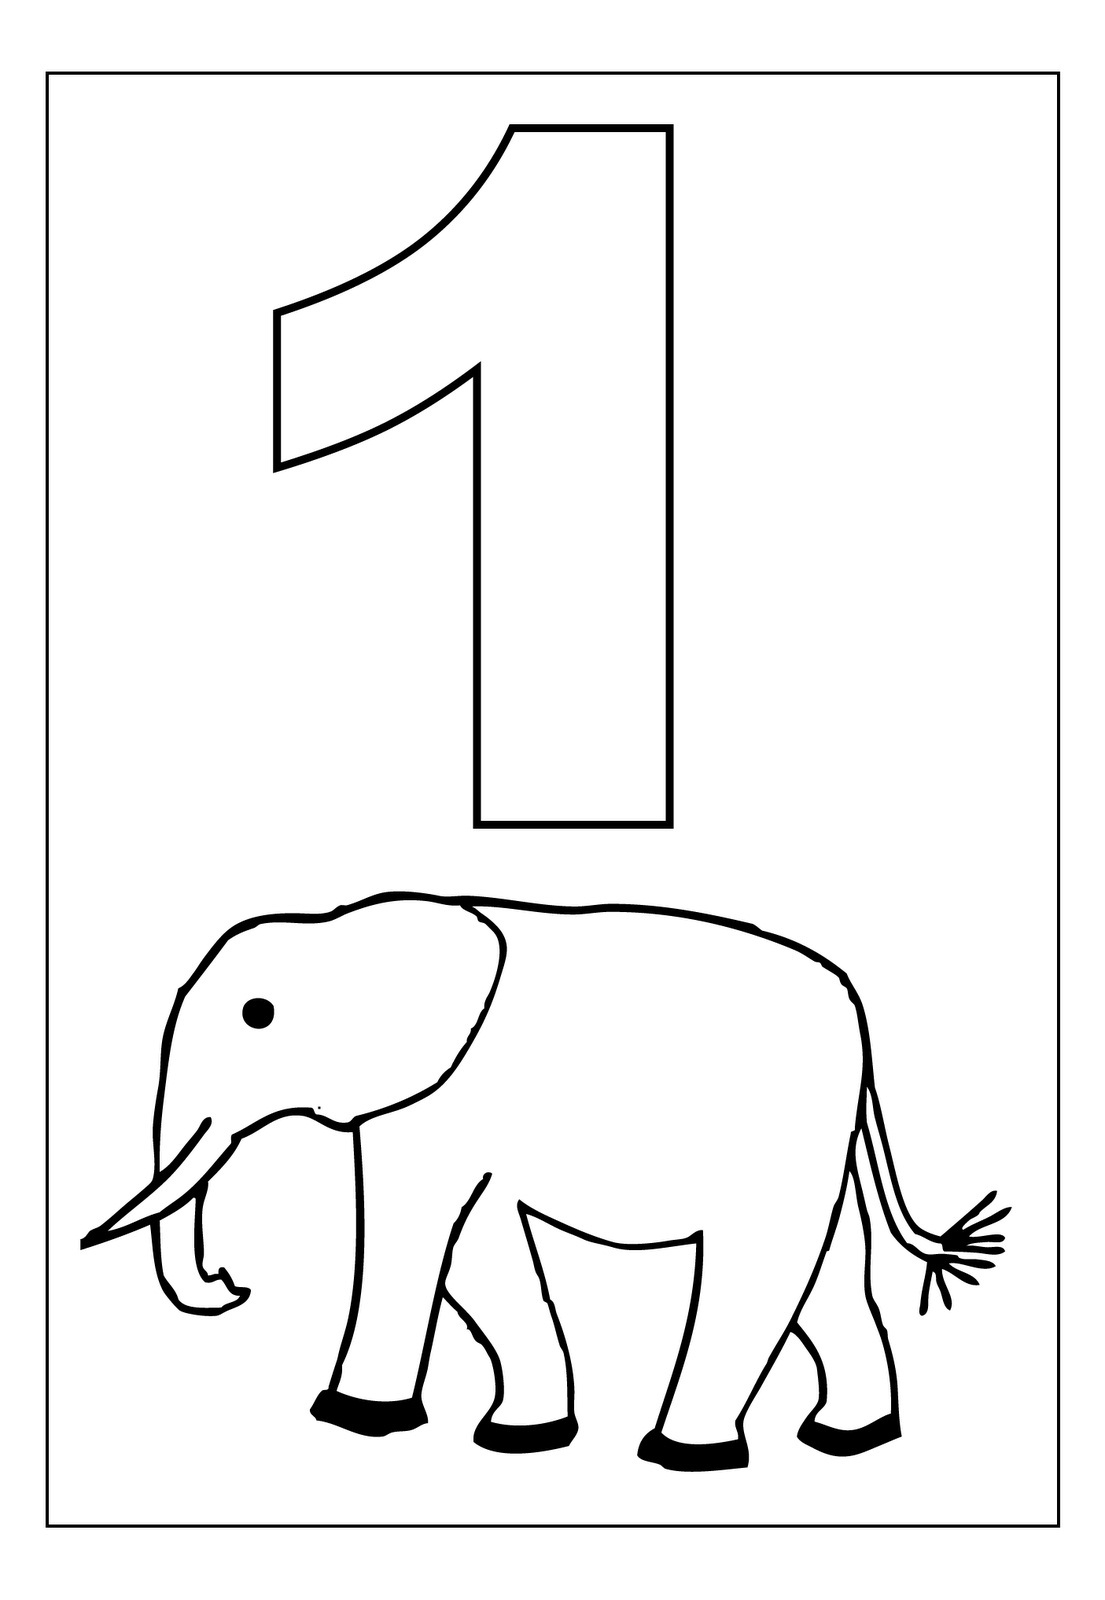 printable coloring pages number 4 - photo#34